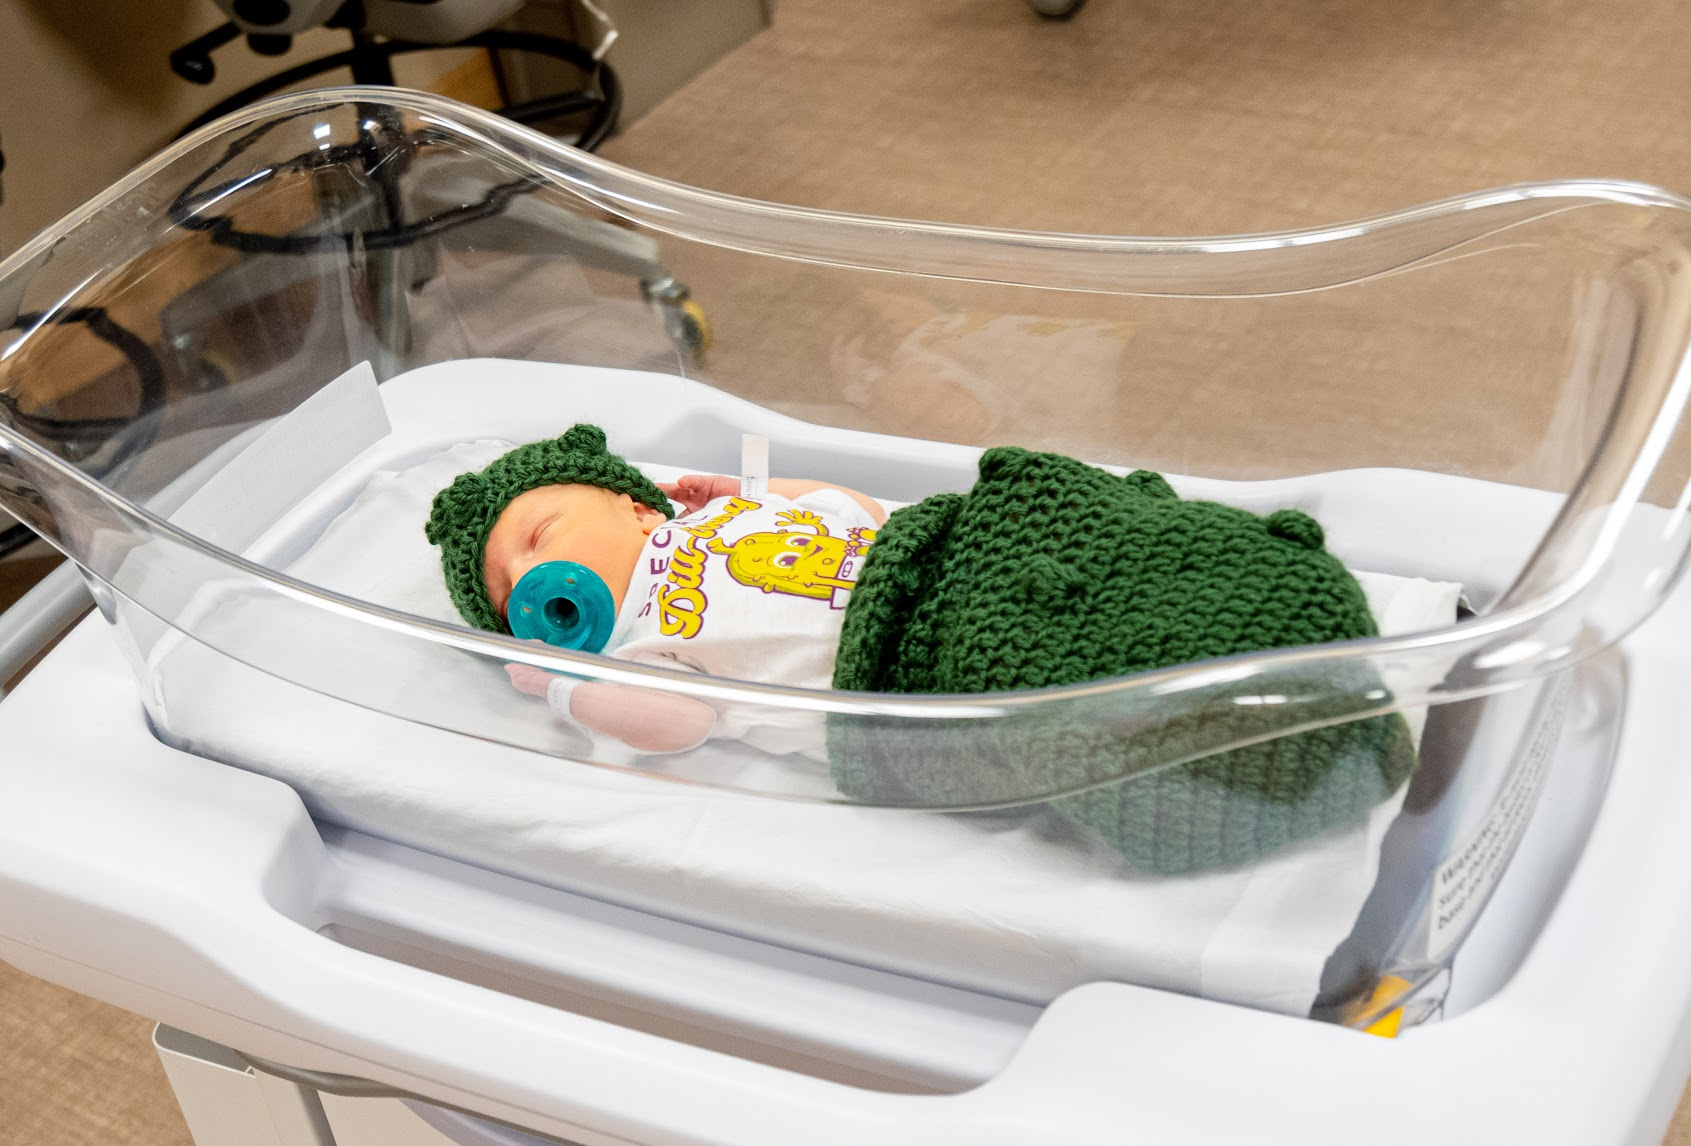 These Newborns Dressed as Pickles Are the Photos You Need to Brighten Your Day